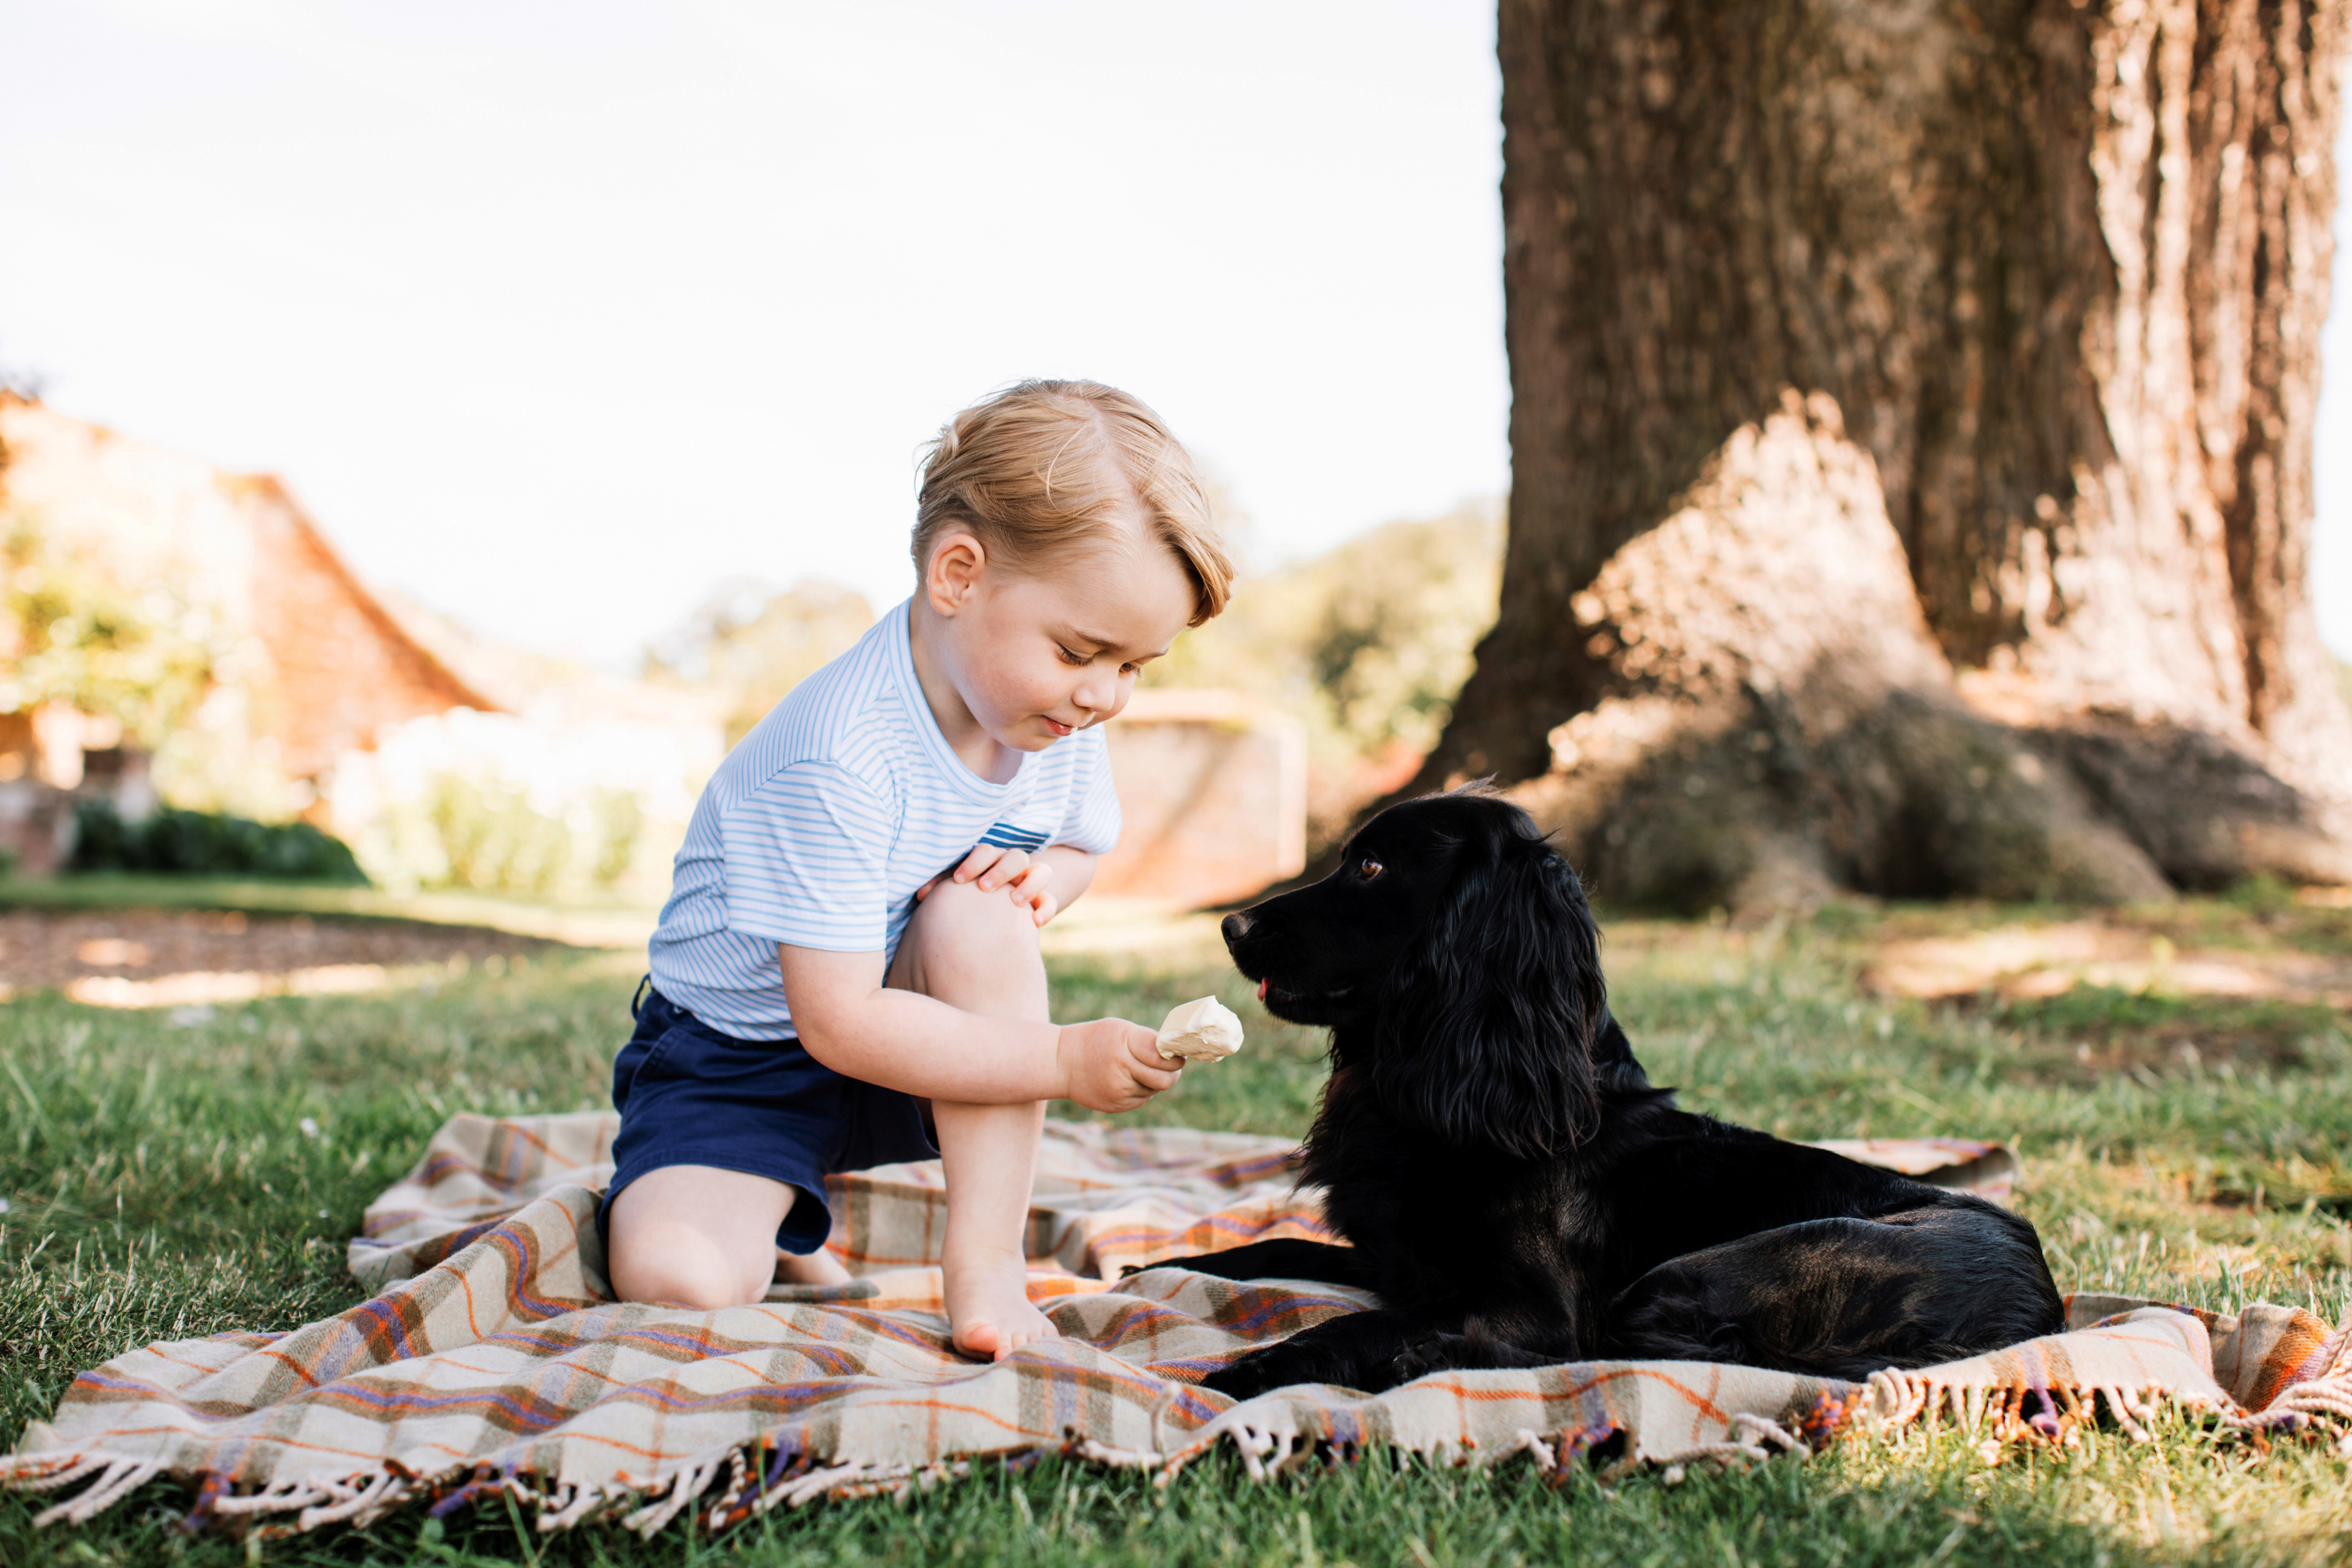 Britain's Prince George is seen with the family pet dog, Lupo, in this photograph taken in mid-July at his home in Norfolk and released by Kensington Palace to mark his third birthday, in London, July 22, 2016.